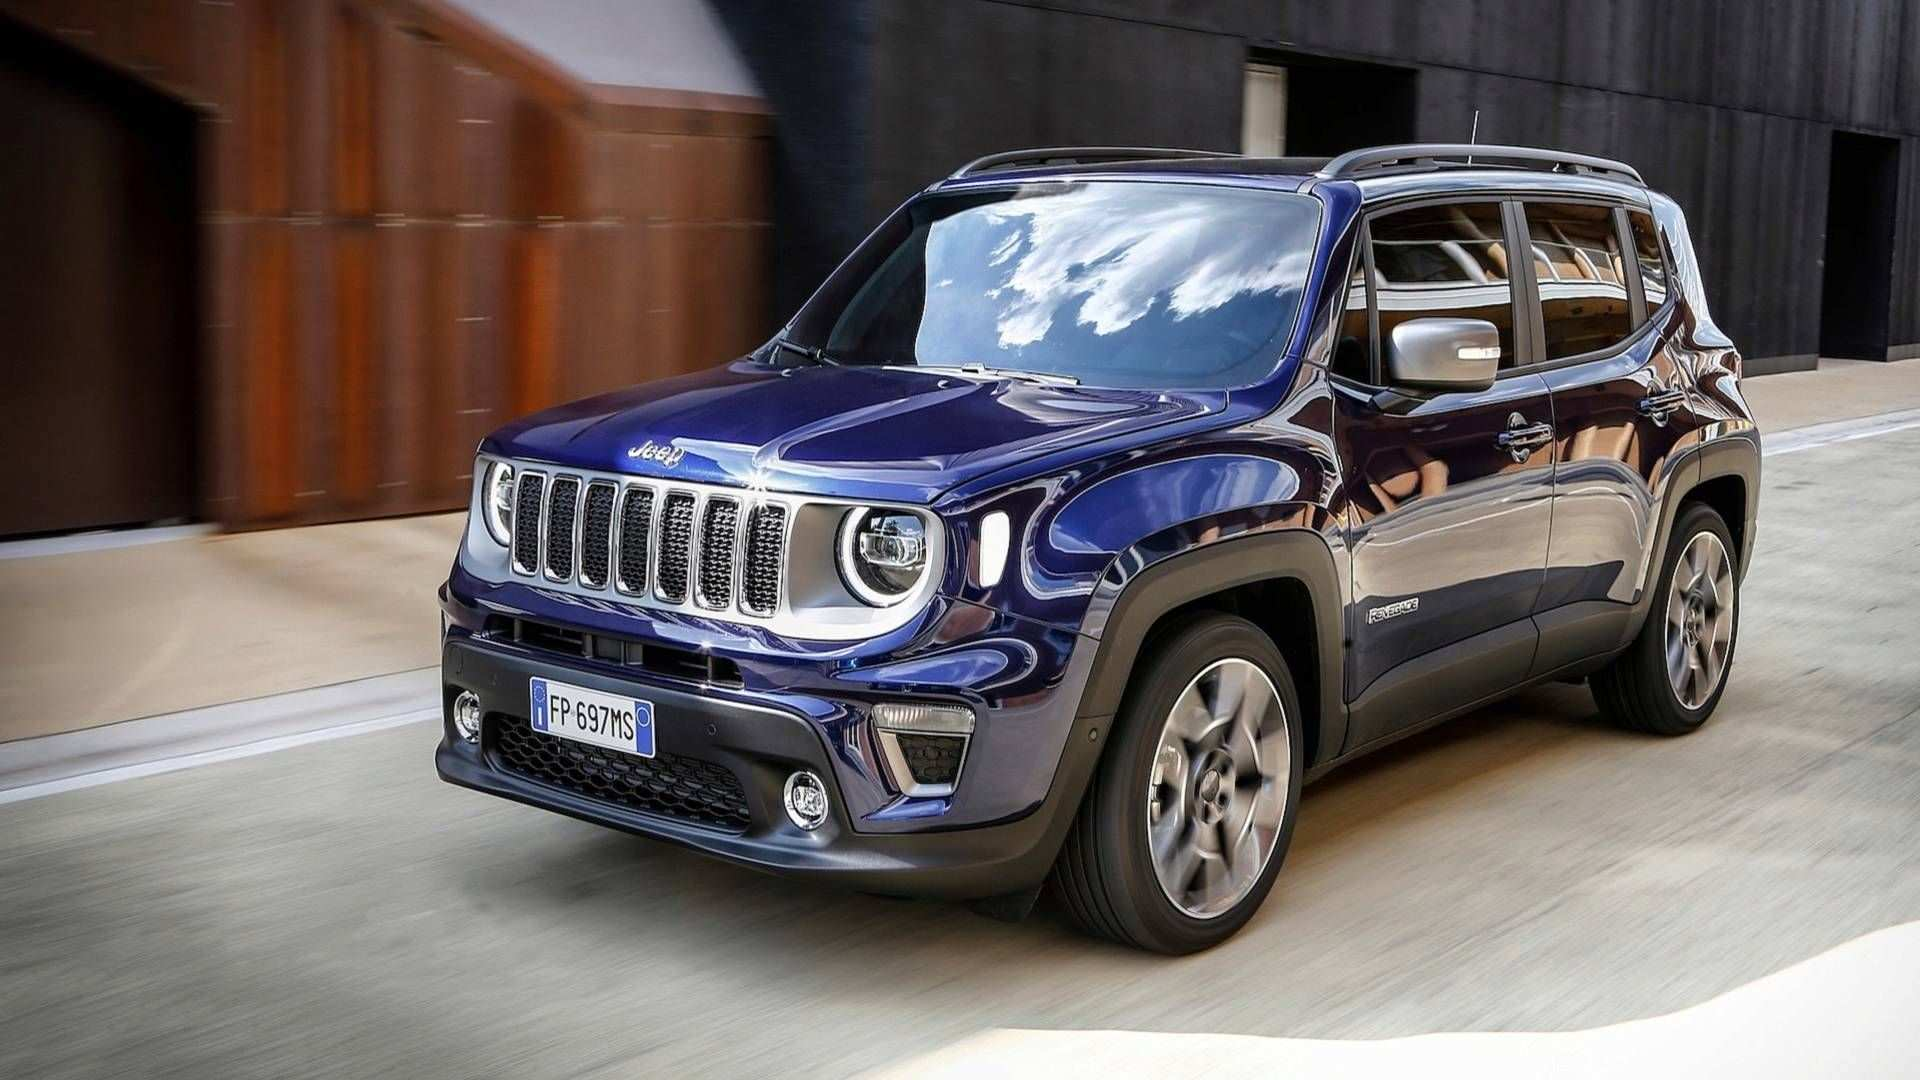 93 New The Jeep Renegade 2019 India New Review Performance and New Engine for The Jeep Renegade 2019 India New Review